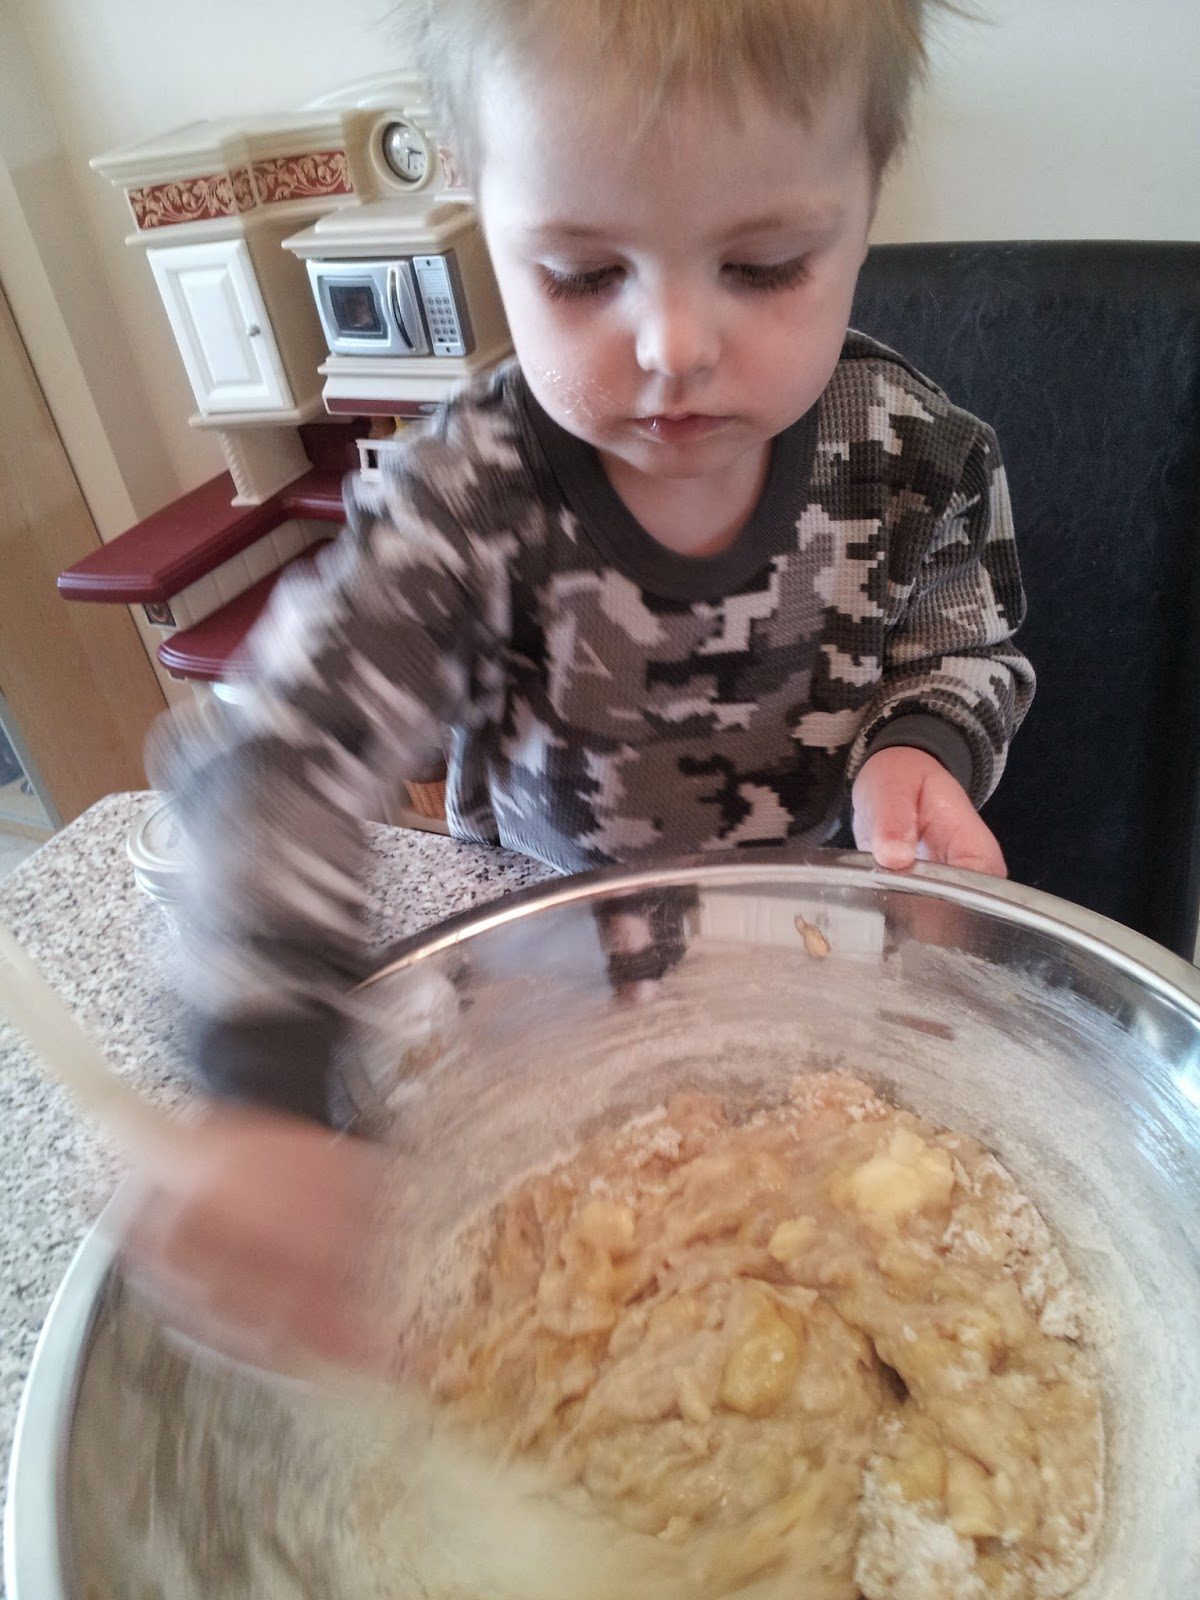 Mixing banana bread batter, kids, baking